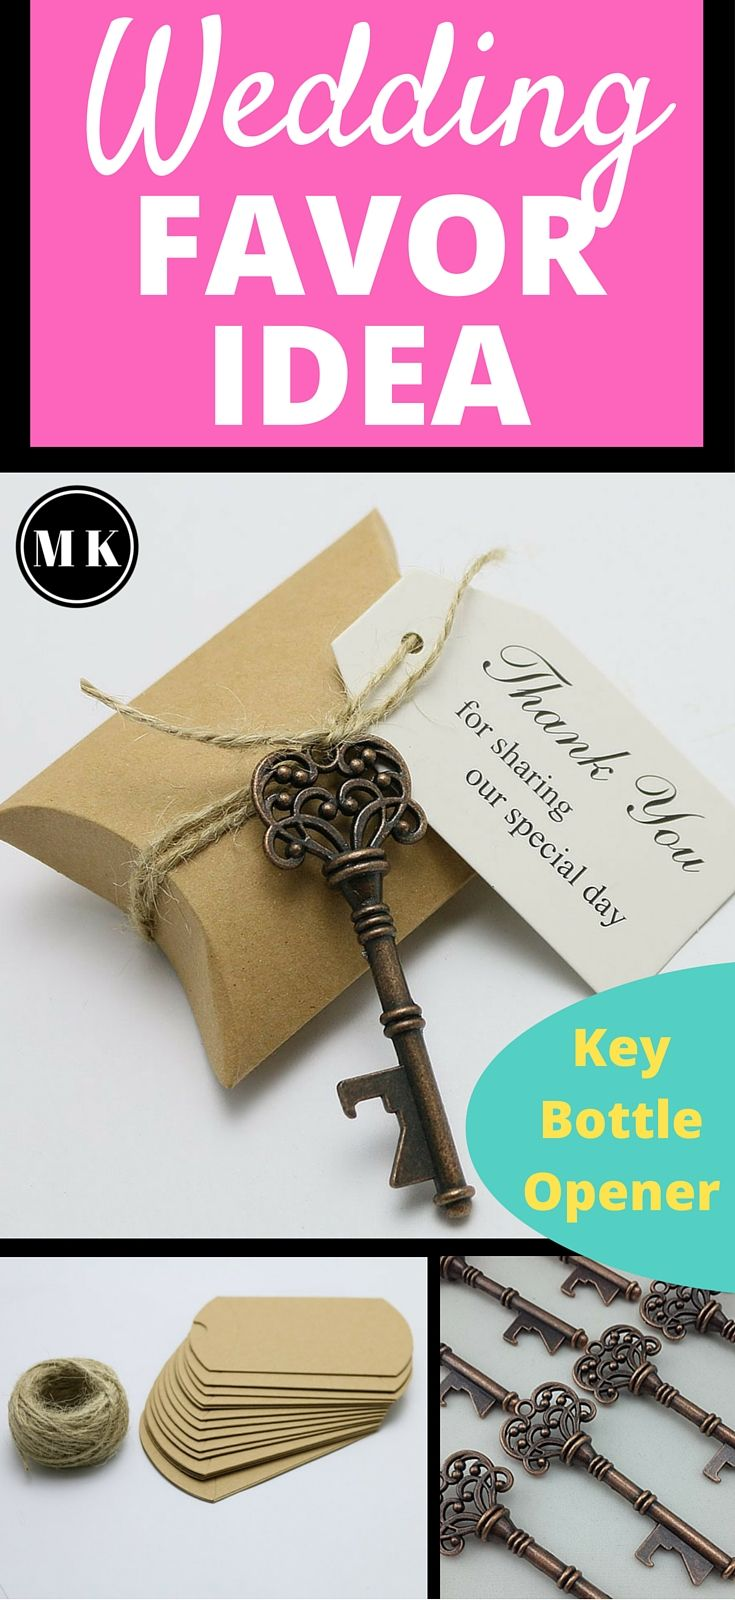 antique skeleton key bottle opener and candy box wedding favor kit - Key Bottle Opener